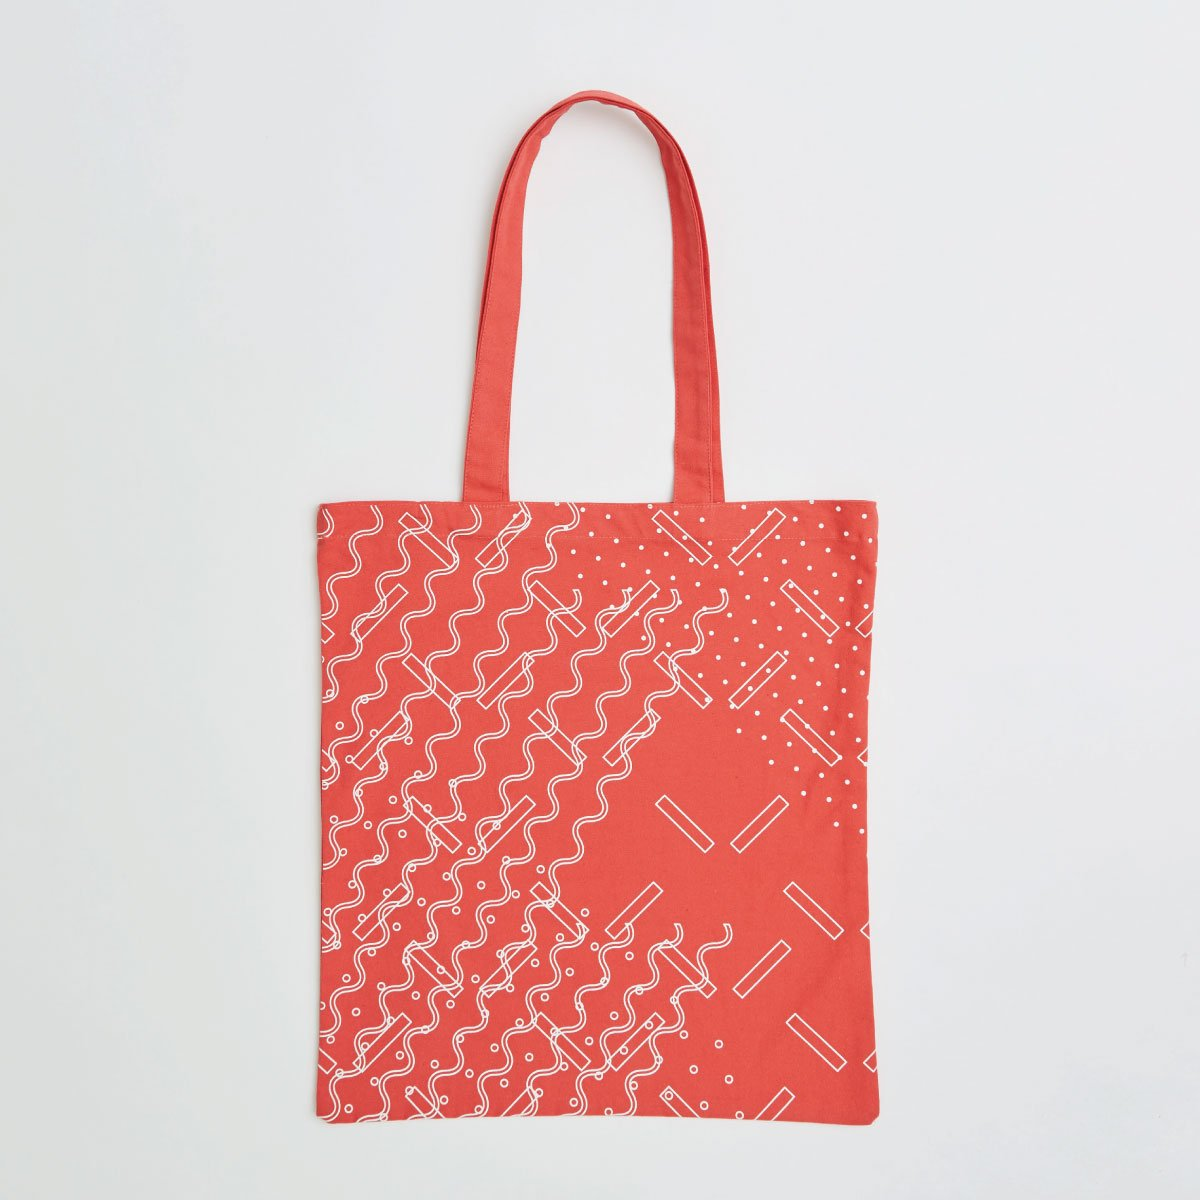 customized-cotton-eco-bag-with-long-handles